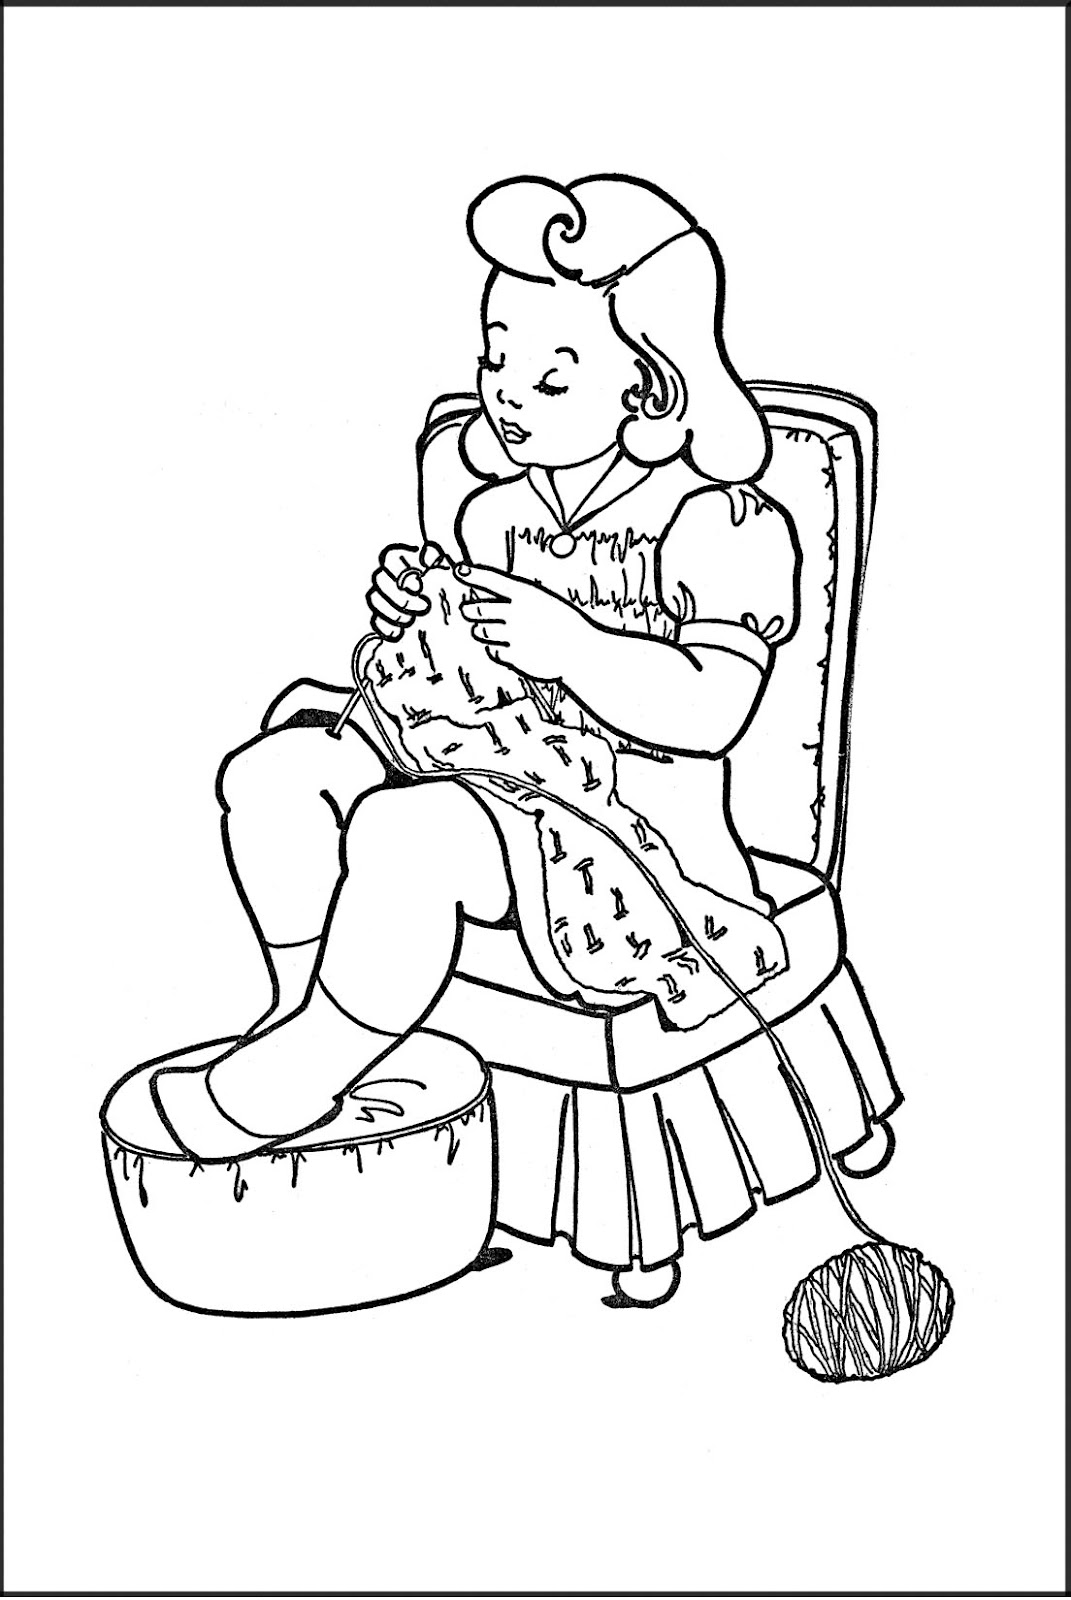 Kids Printable Coloring Page Girl Knitting The